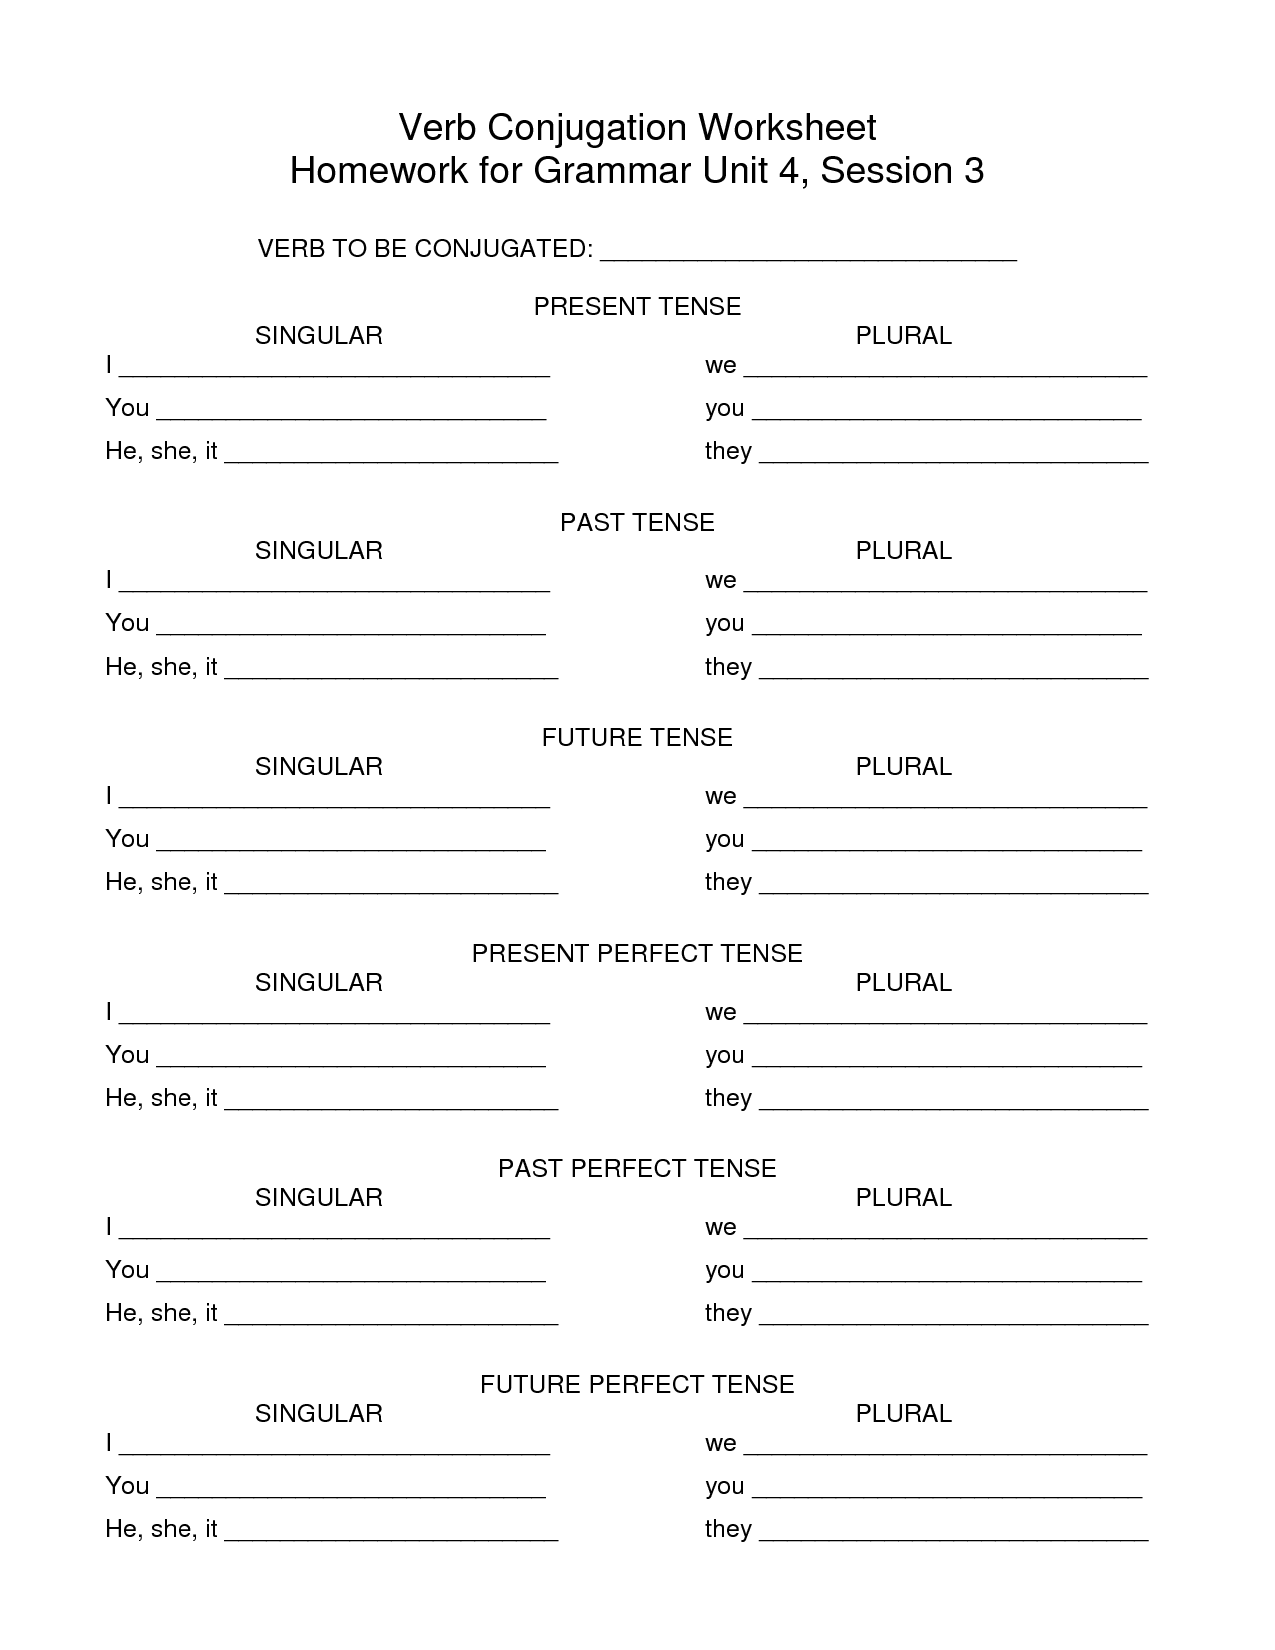 spanish verb conjugation worksheets blank para la clase pinterest spanish spanish verb. Black Bedroom Furniture Sets. Home Design Ideas